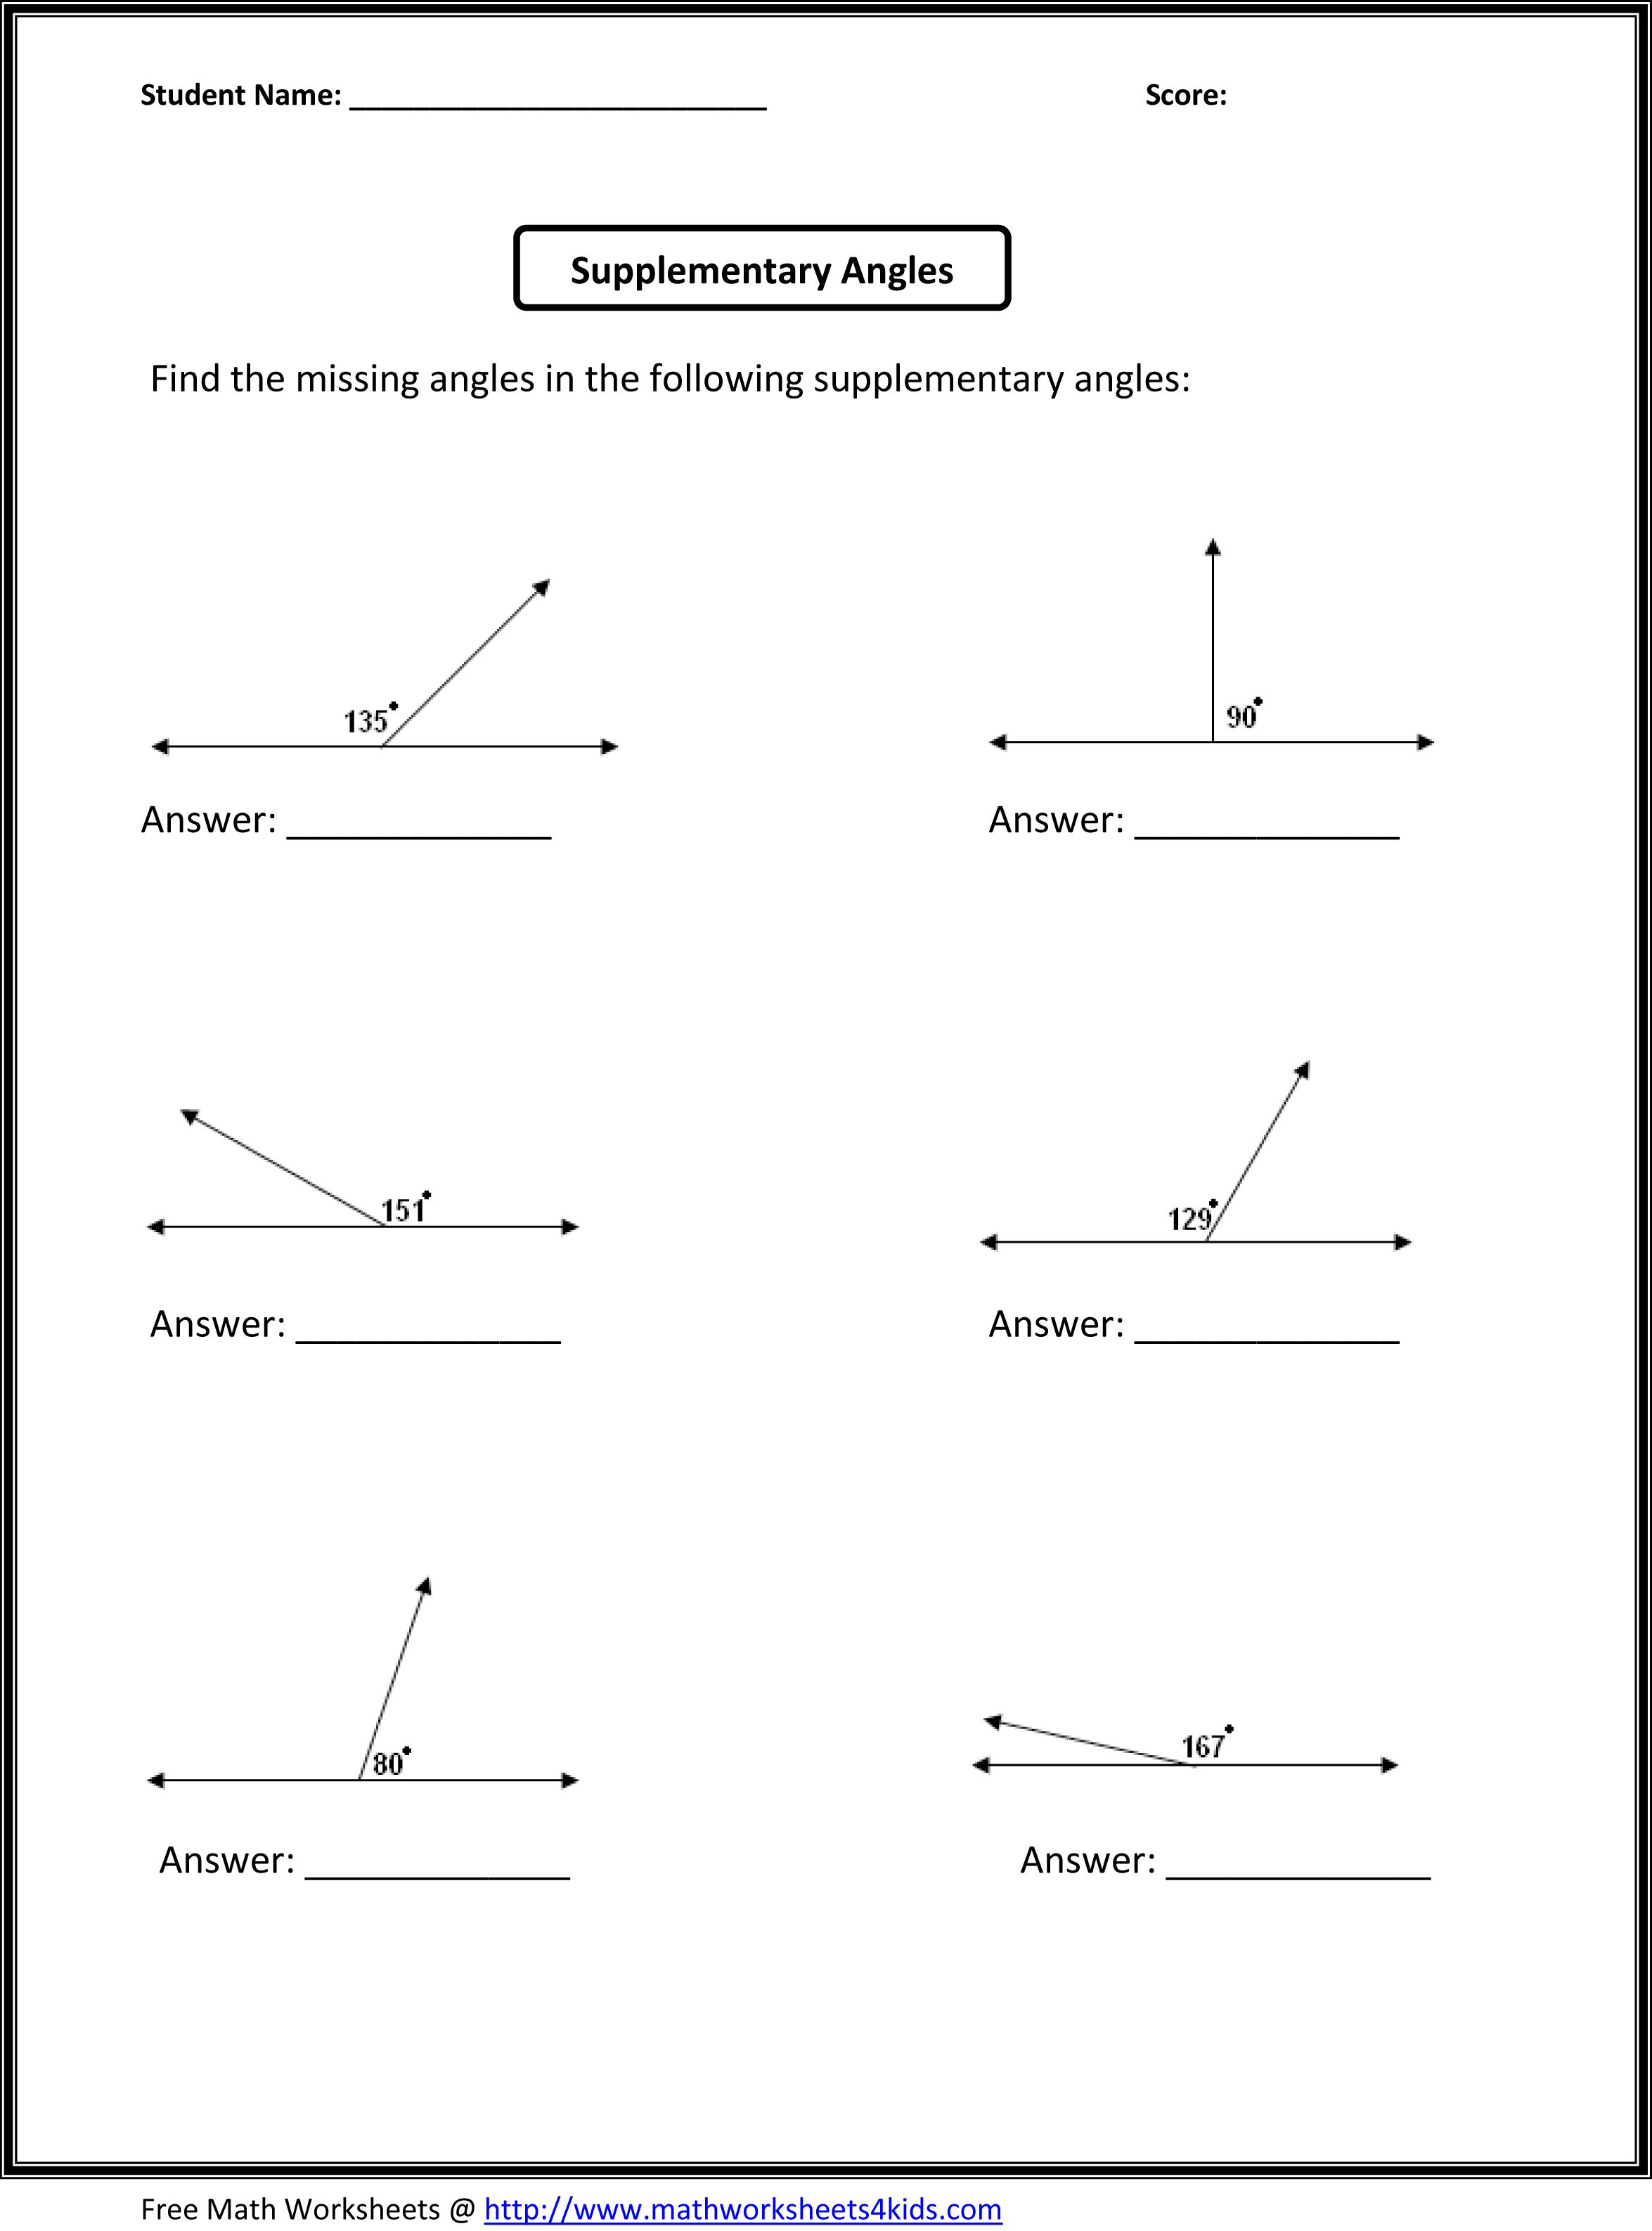 Worksheets Math Printable Worksheets For 6th Grade supplementary angles classroom madness pinterest math sixth grade worksheets